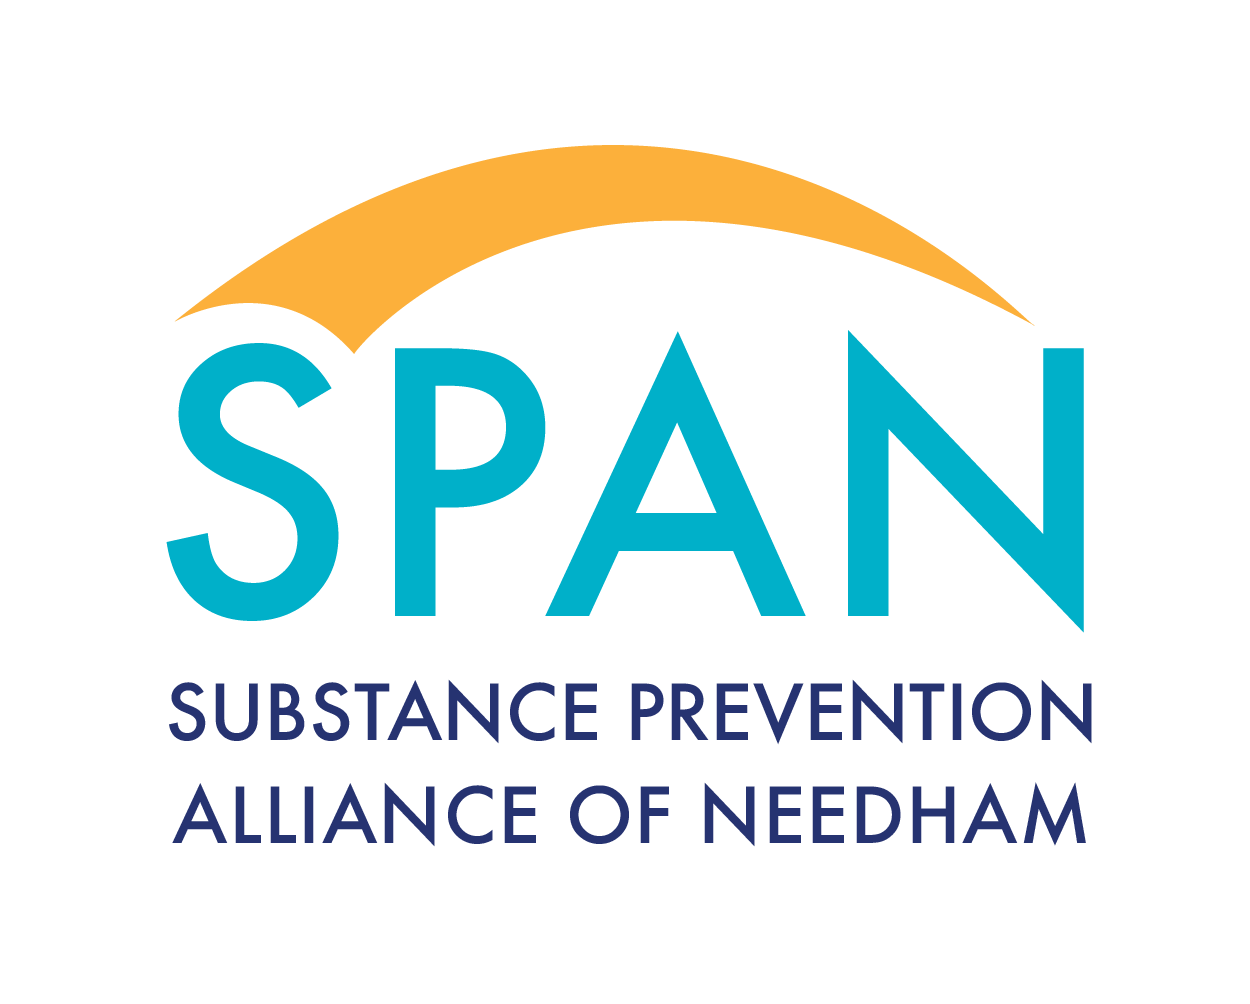 Substance Prevention Alliance of Needham